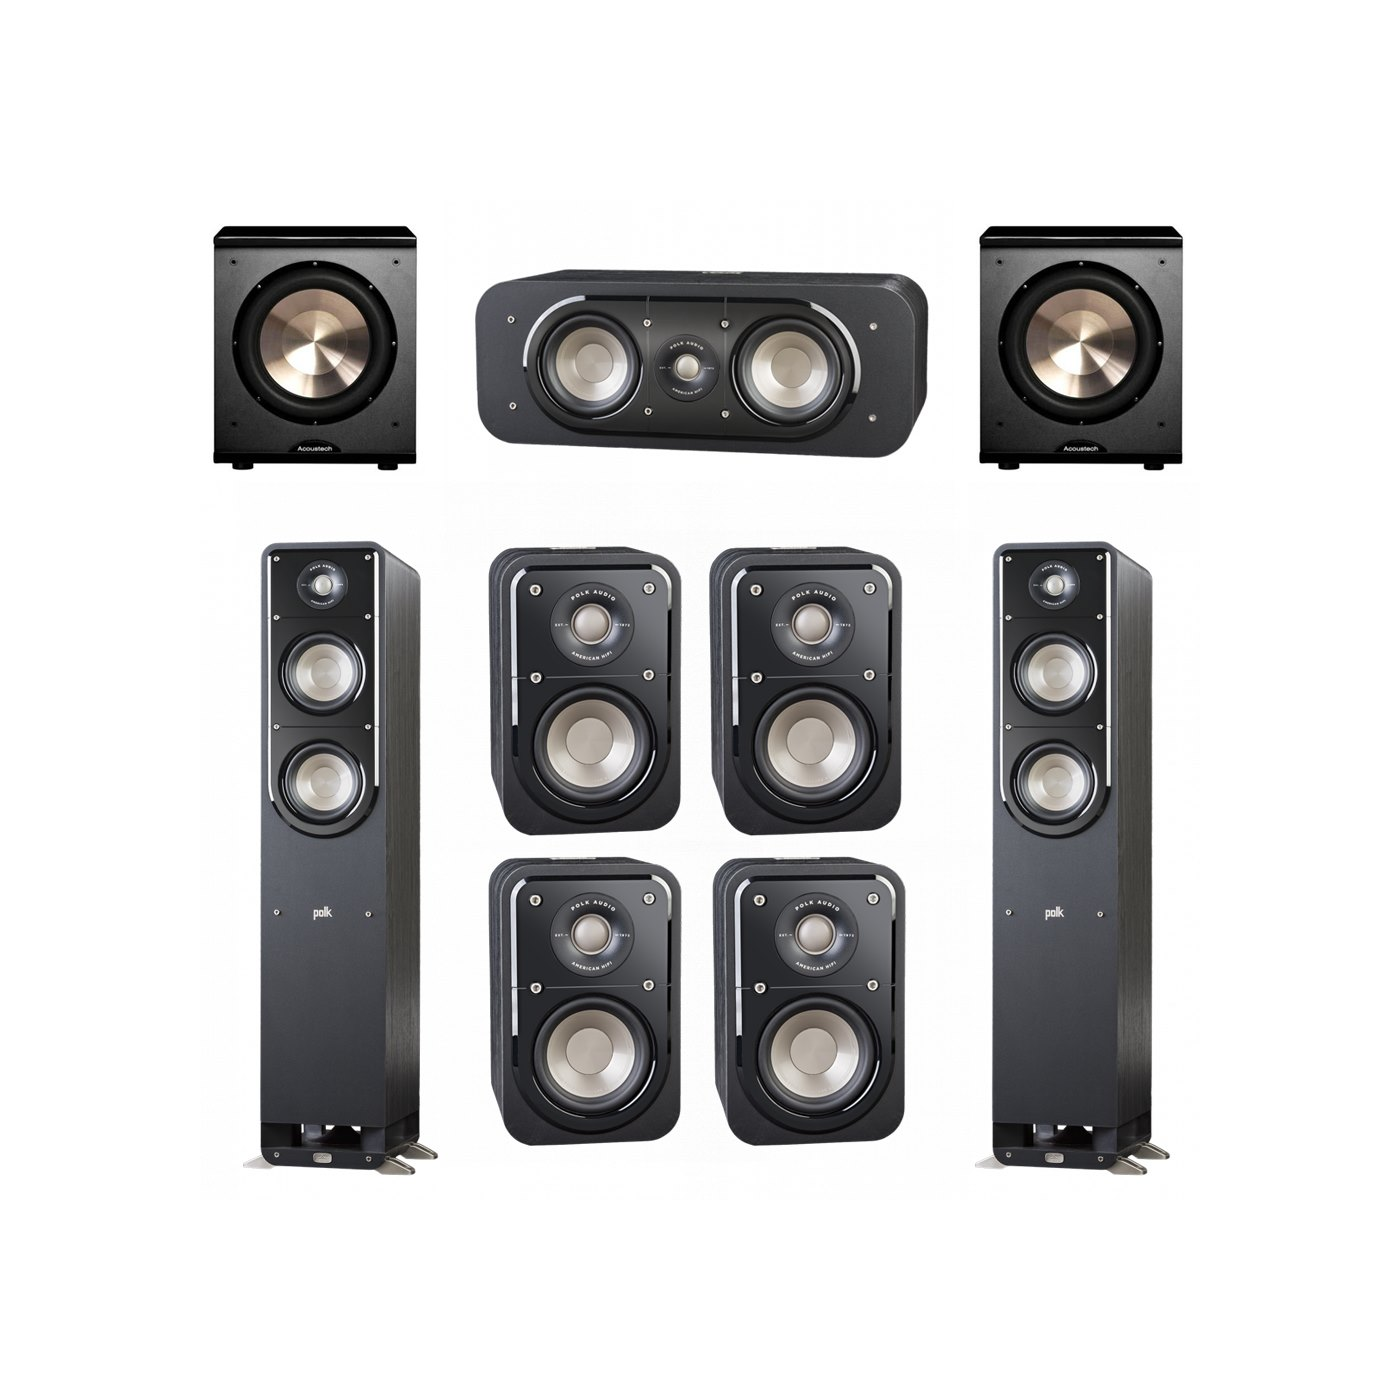 Polk Audio Signature 7.2 System with 2 S50 Tower Speaker, 1 Polk S30 Center Speaker, 4 Polk S10 Bookshelf Speaker, 2 BIC/Acoustech Platinum Series PL-200 Subwoofer